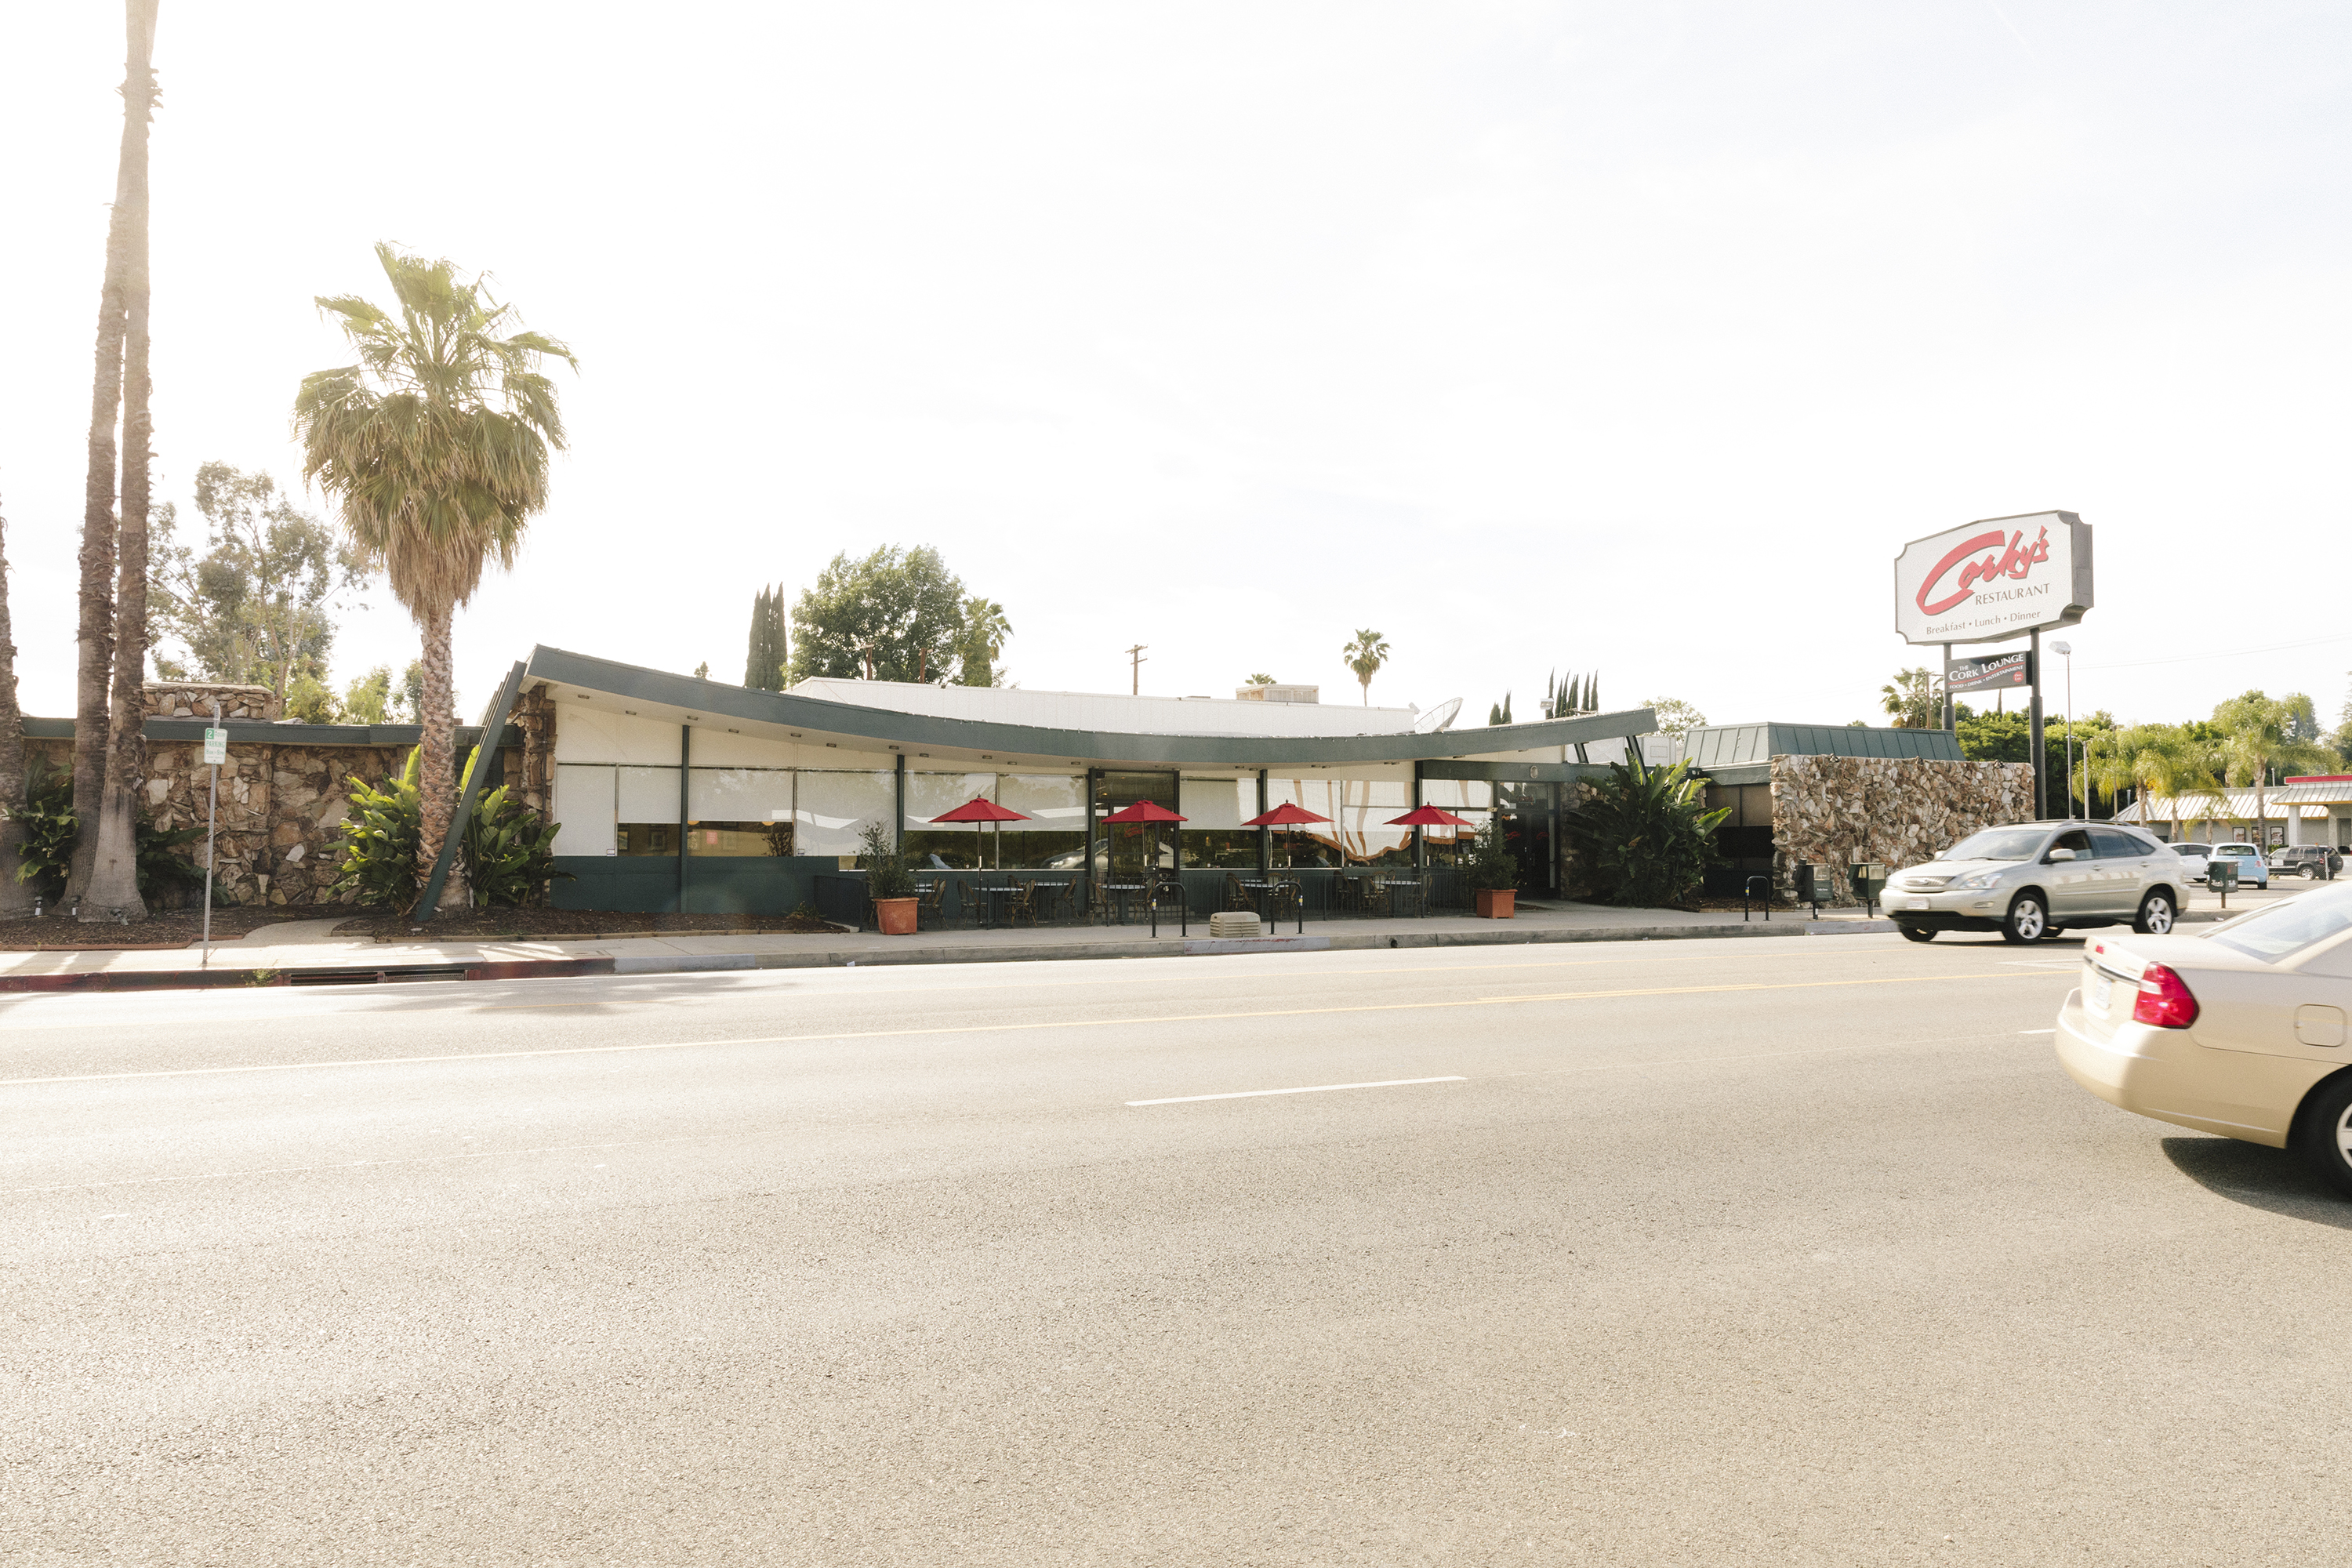 Demolition fears swirl as Corky's diner closes